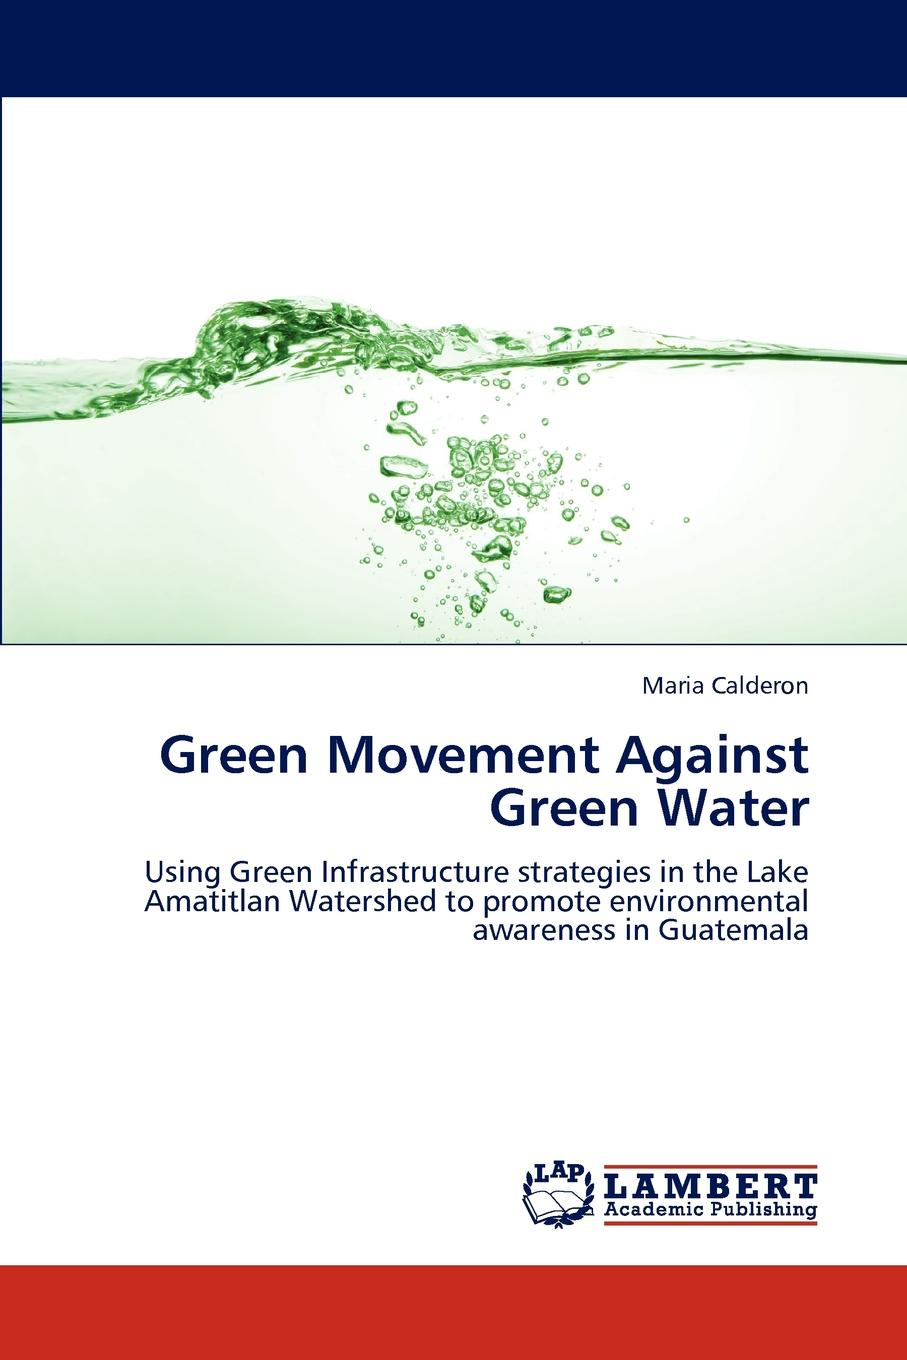 Maria Calderon Green Movement Against Green Water gholamreza asadollahfardi rashin asadollahfardi the usage of the polluted water for agriculture